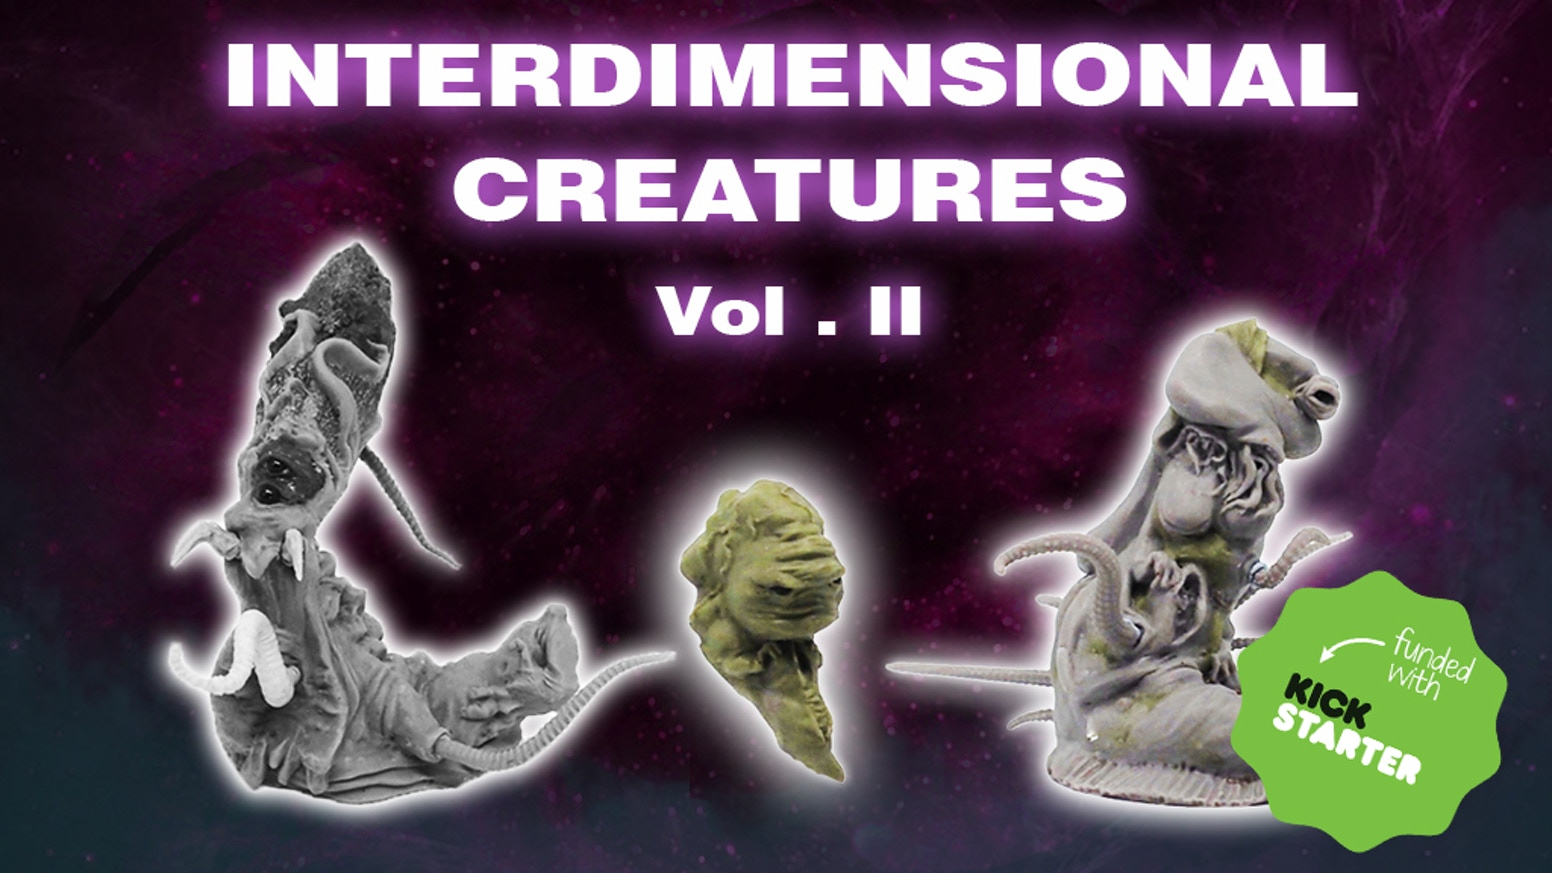 Interdimensional Creatures Vol.II